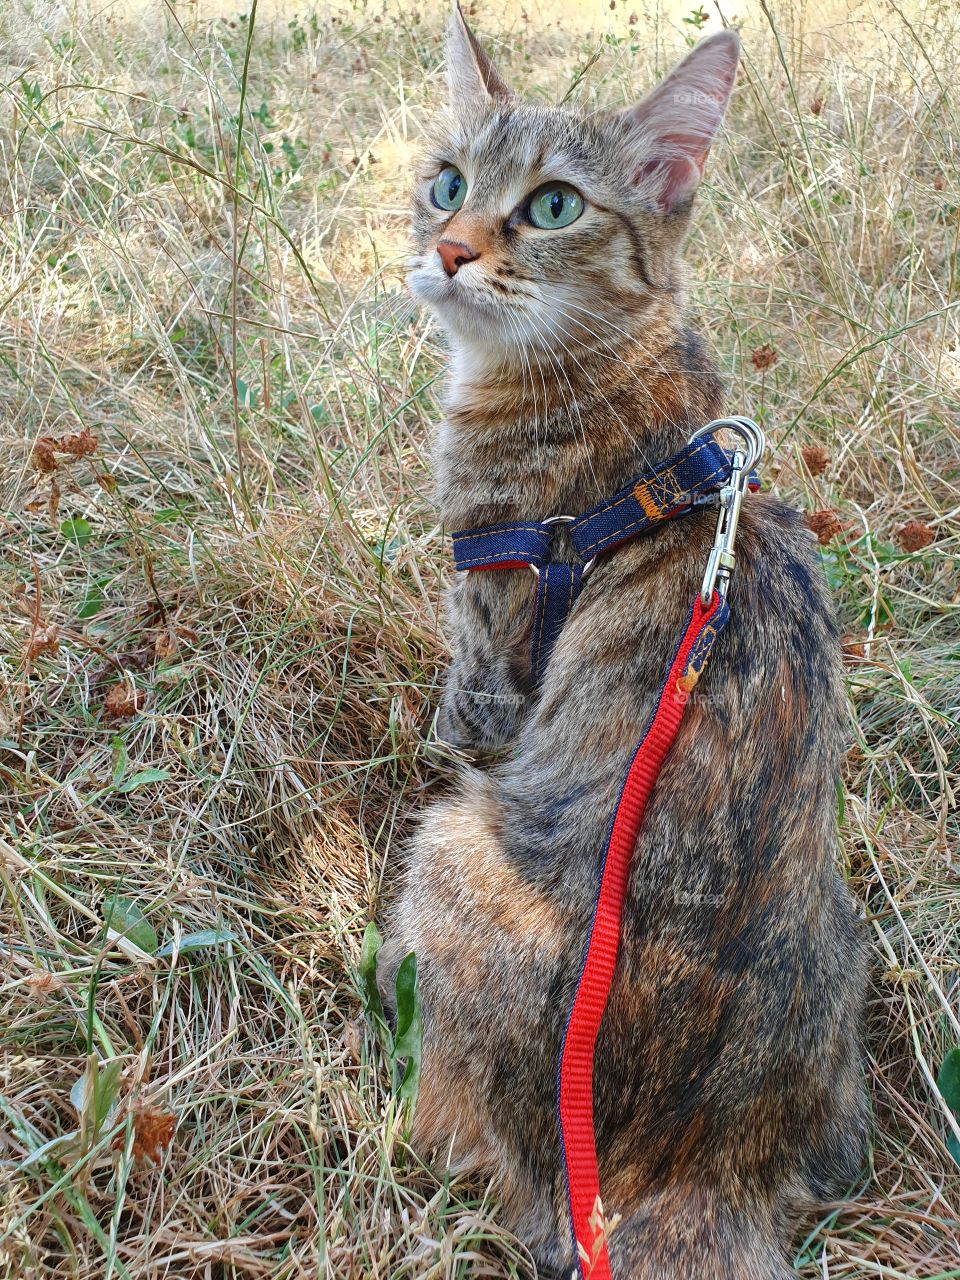 cat on a leash looking up sitting in the grass